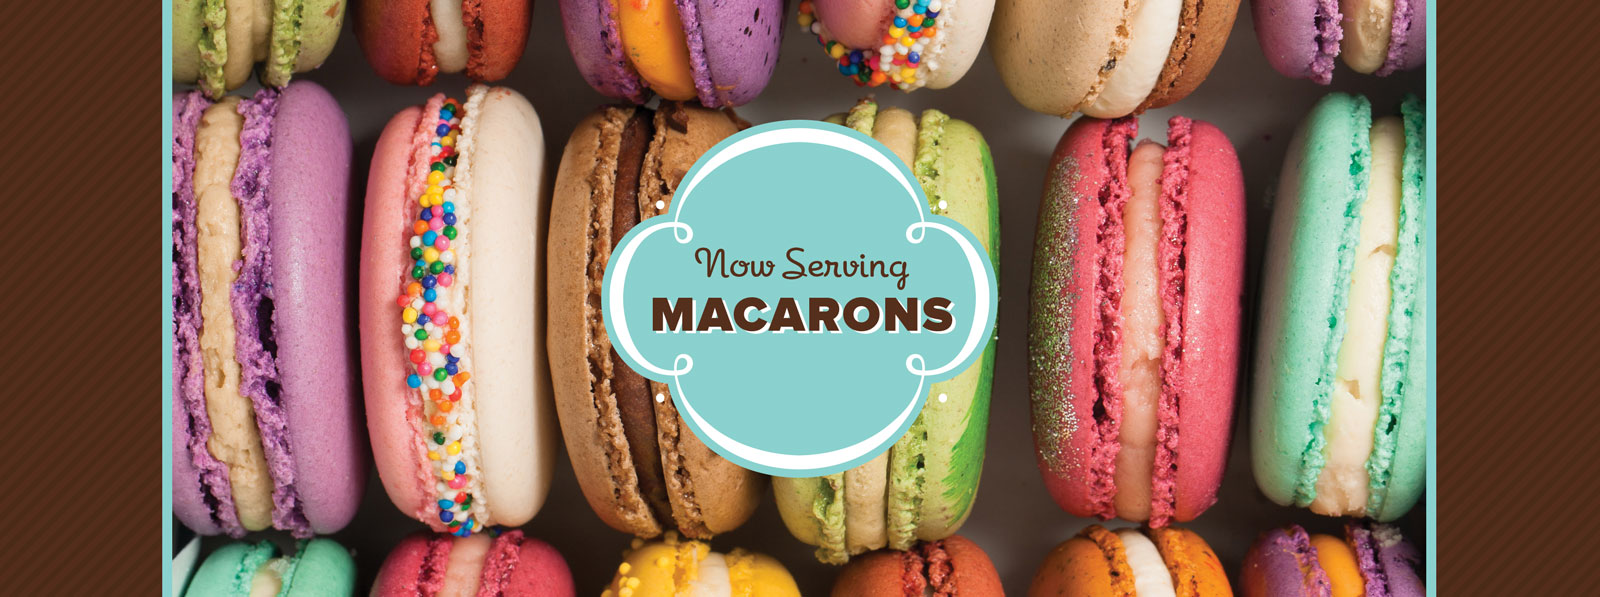 Now Serving Macarons